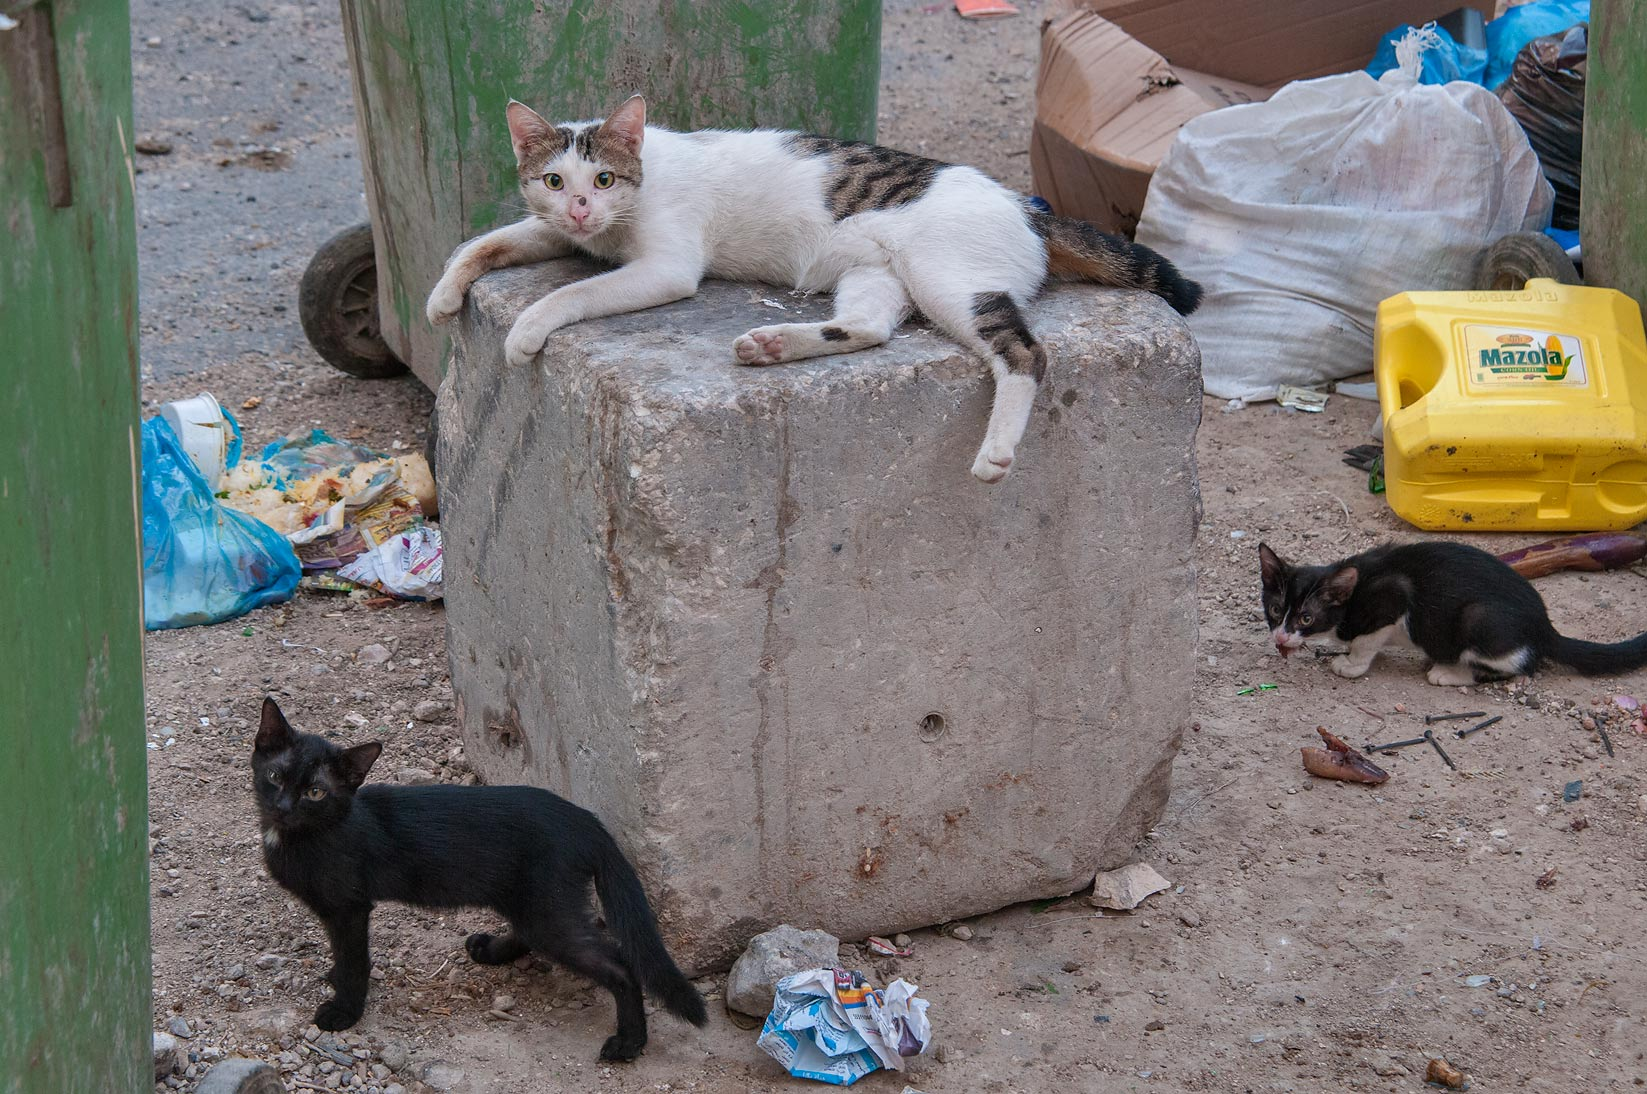 Family of cats at Aws Bin Al Samit St., Musheirib area. Doha, Qatar